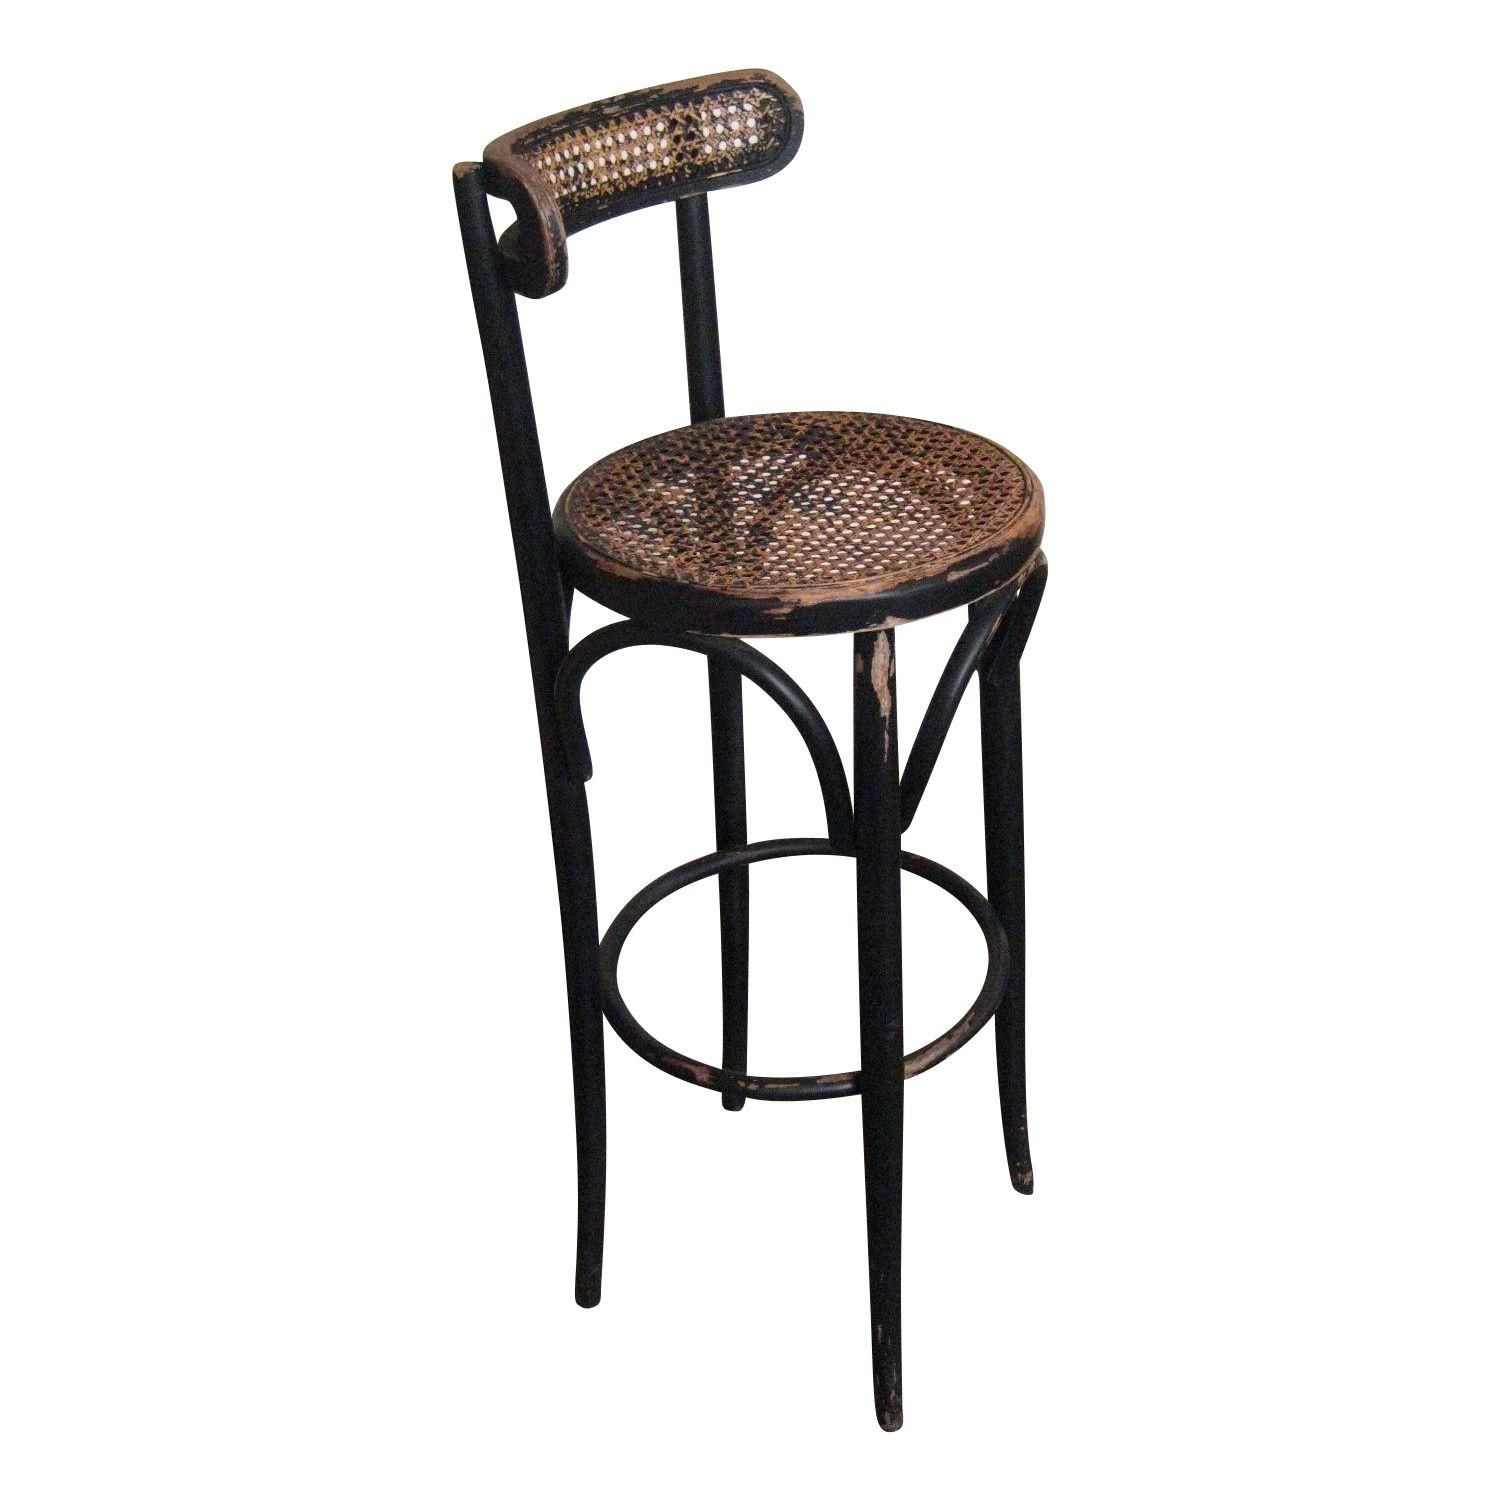 Tabourets De Bar Style Thonet A Bistro Classic 1920s Thonet Style Bentwood Bar Stool In